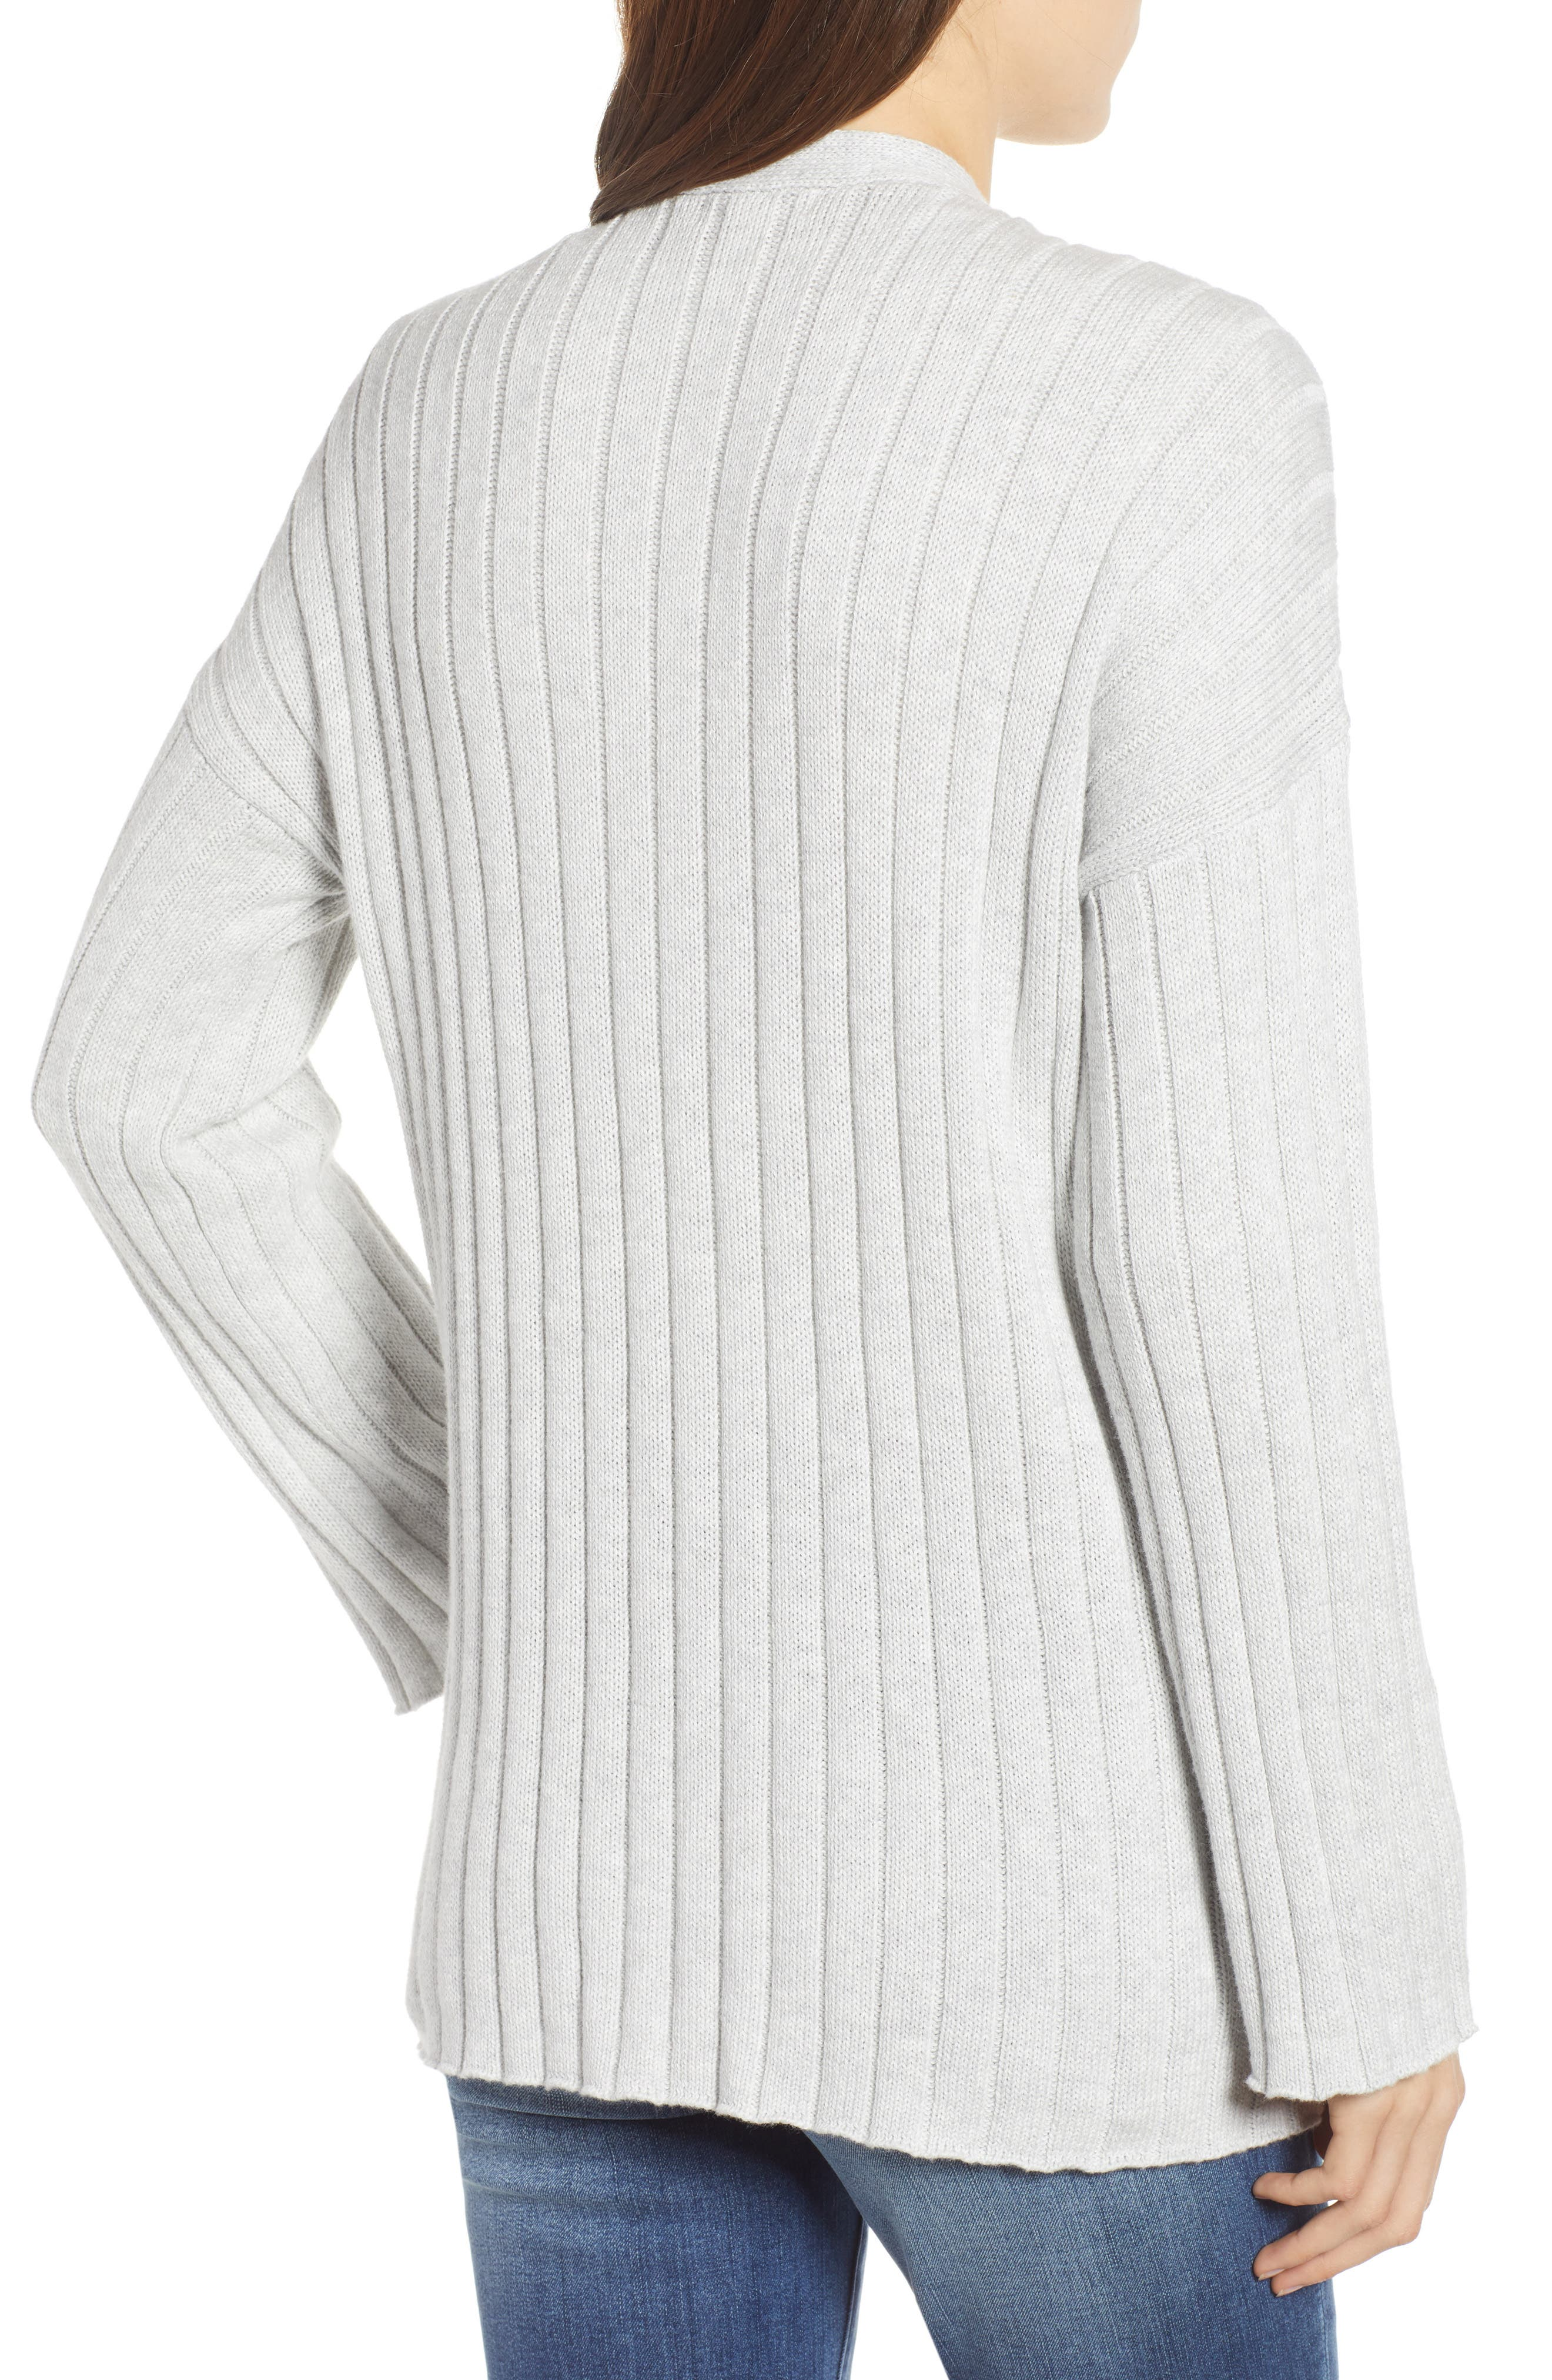 BP., Ribbed Throw On Cardigan, Alternate thumbnail 3, color, GREY QUIET HEATHER